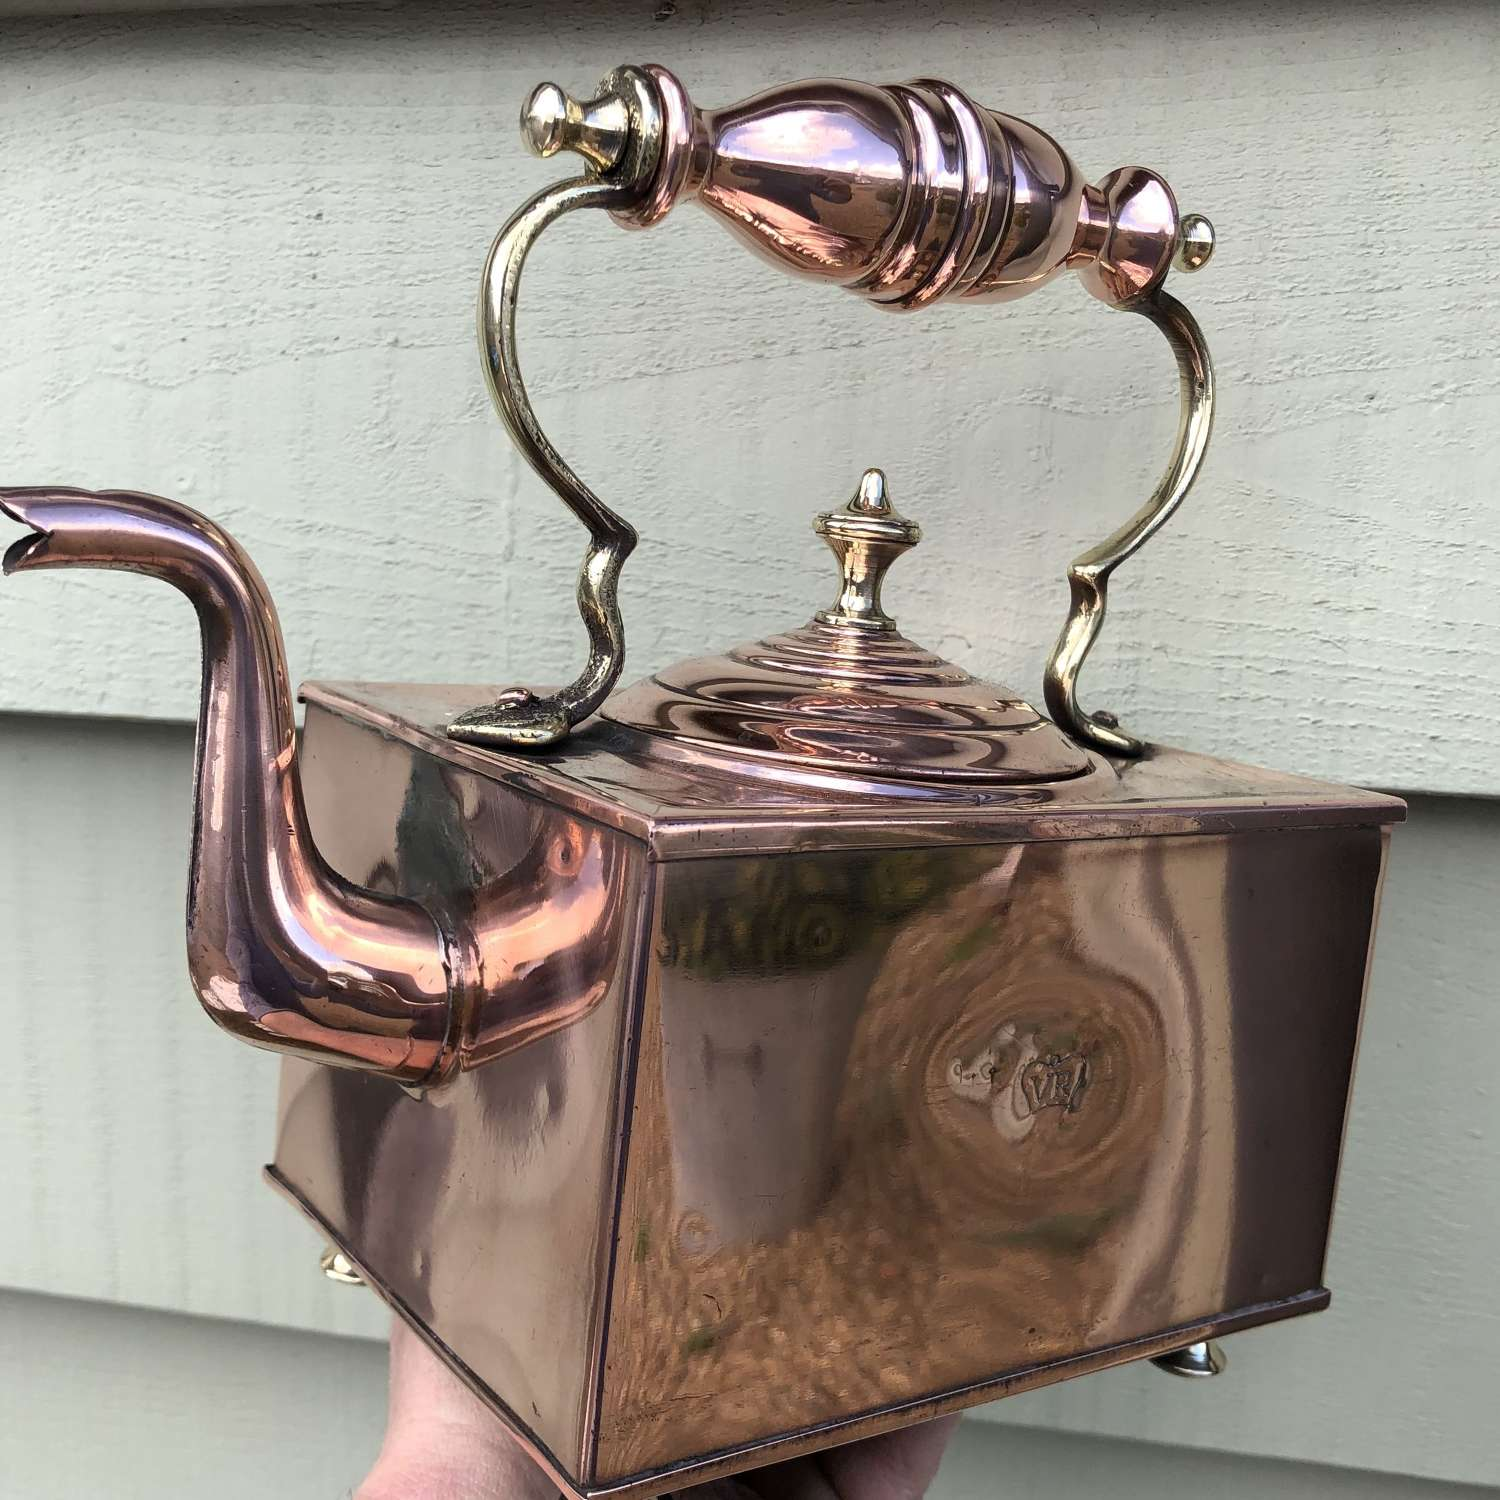 Victorian Square Copper Kettle